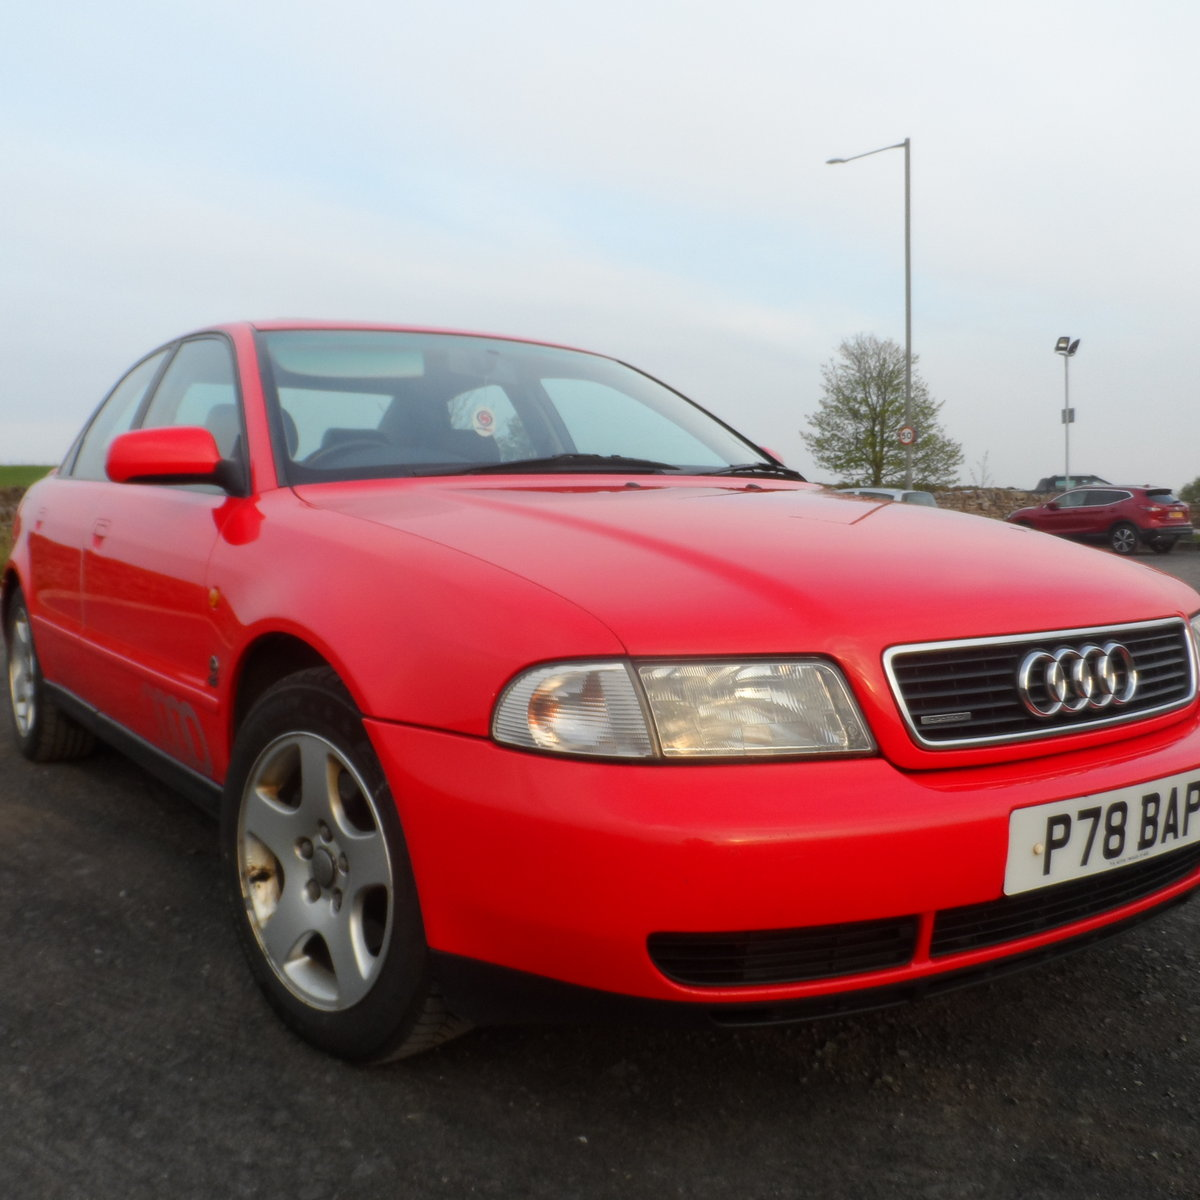 1997 A4 2.7 V6 Quattro - Petrol For Sale (picture 1 of 6)